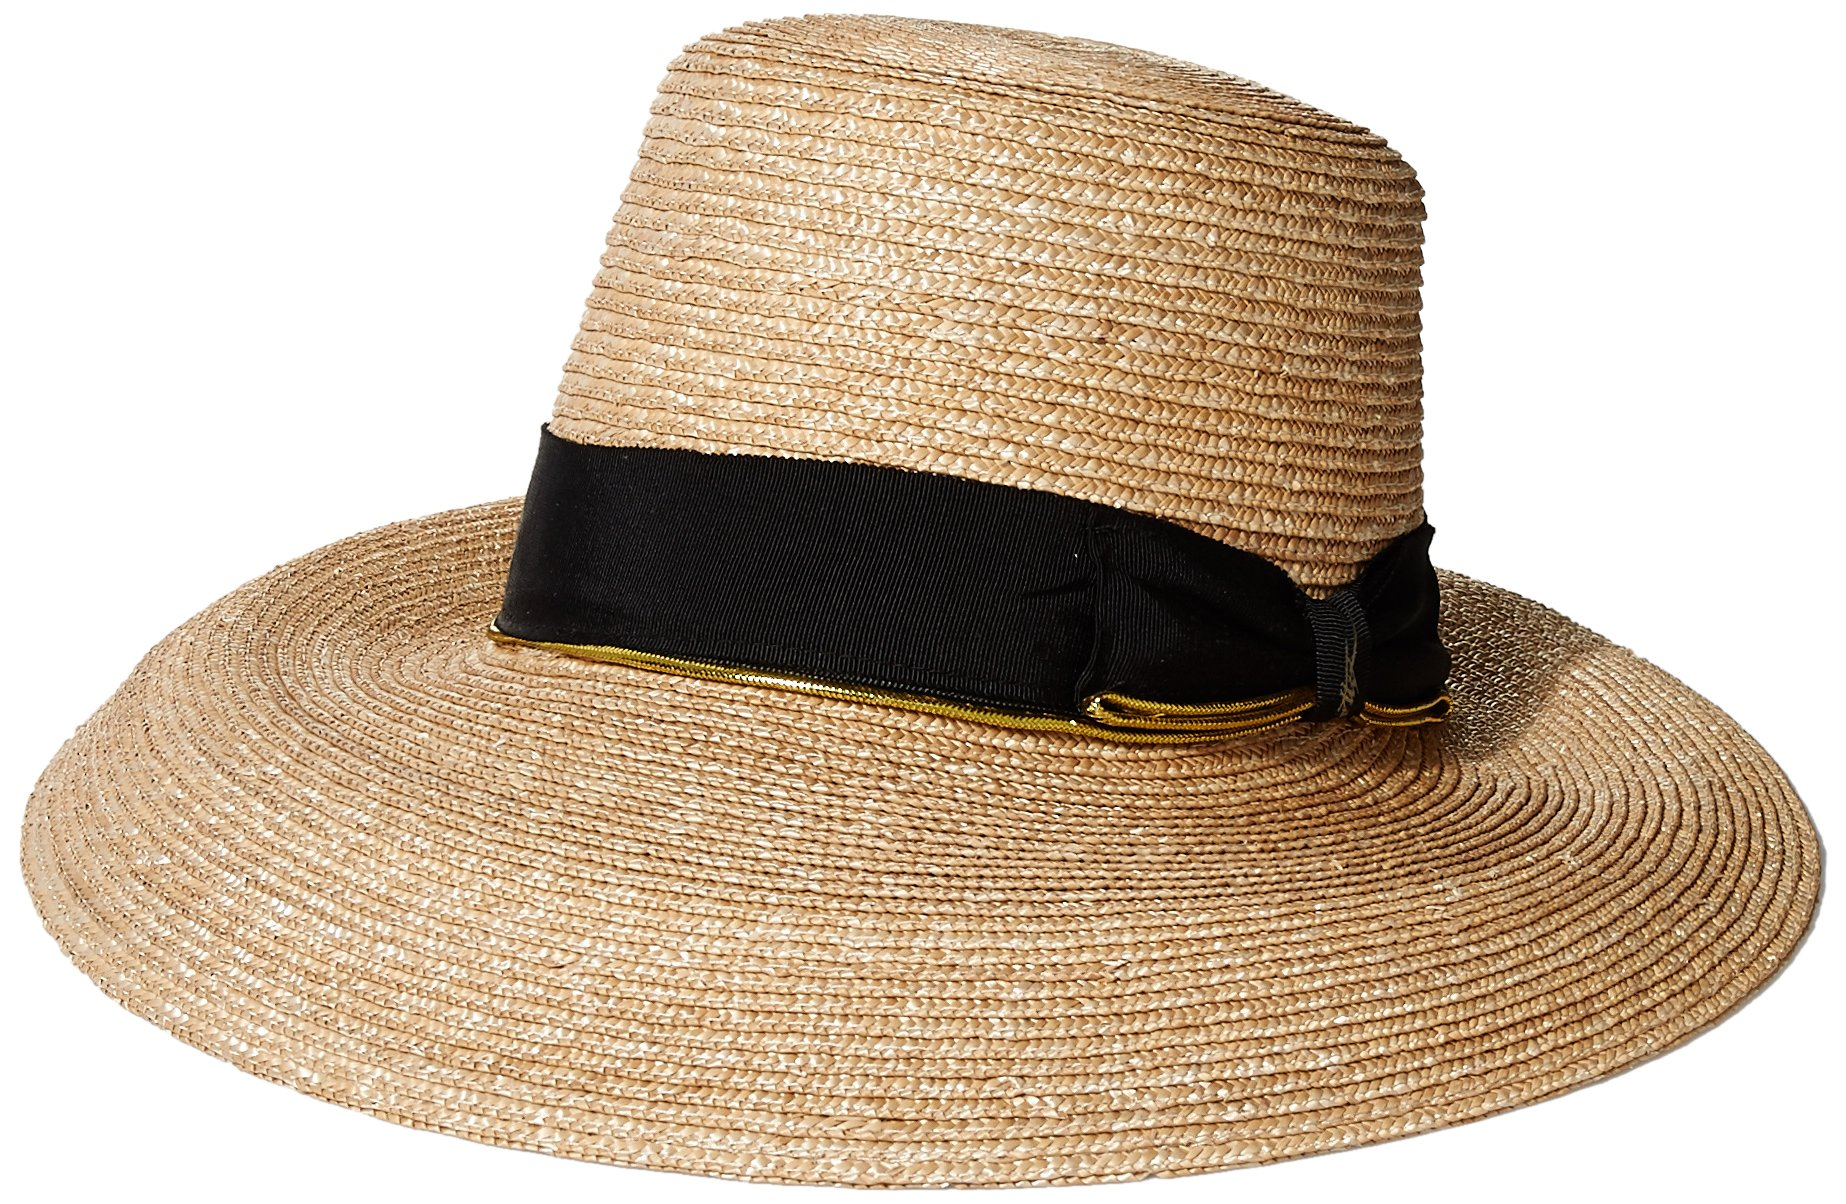 Gottex Women's Layla Fine Milan Sunhat Packable, Adjustable and UPF Rated, Natural/Black, One Size